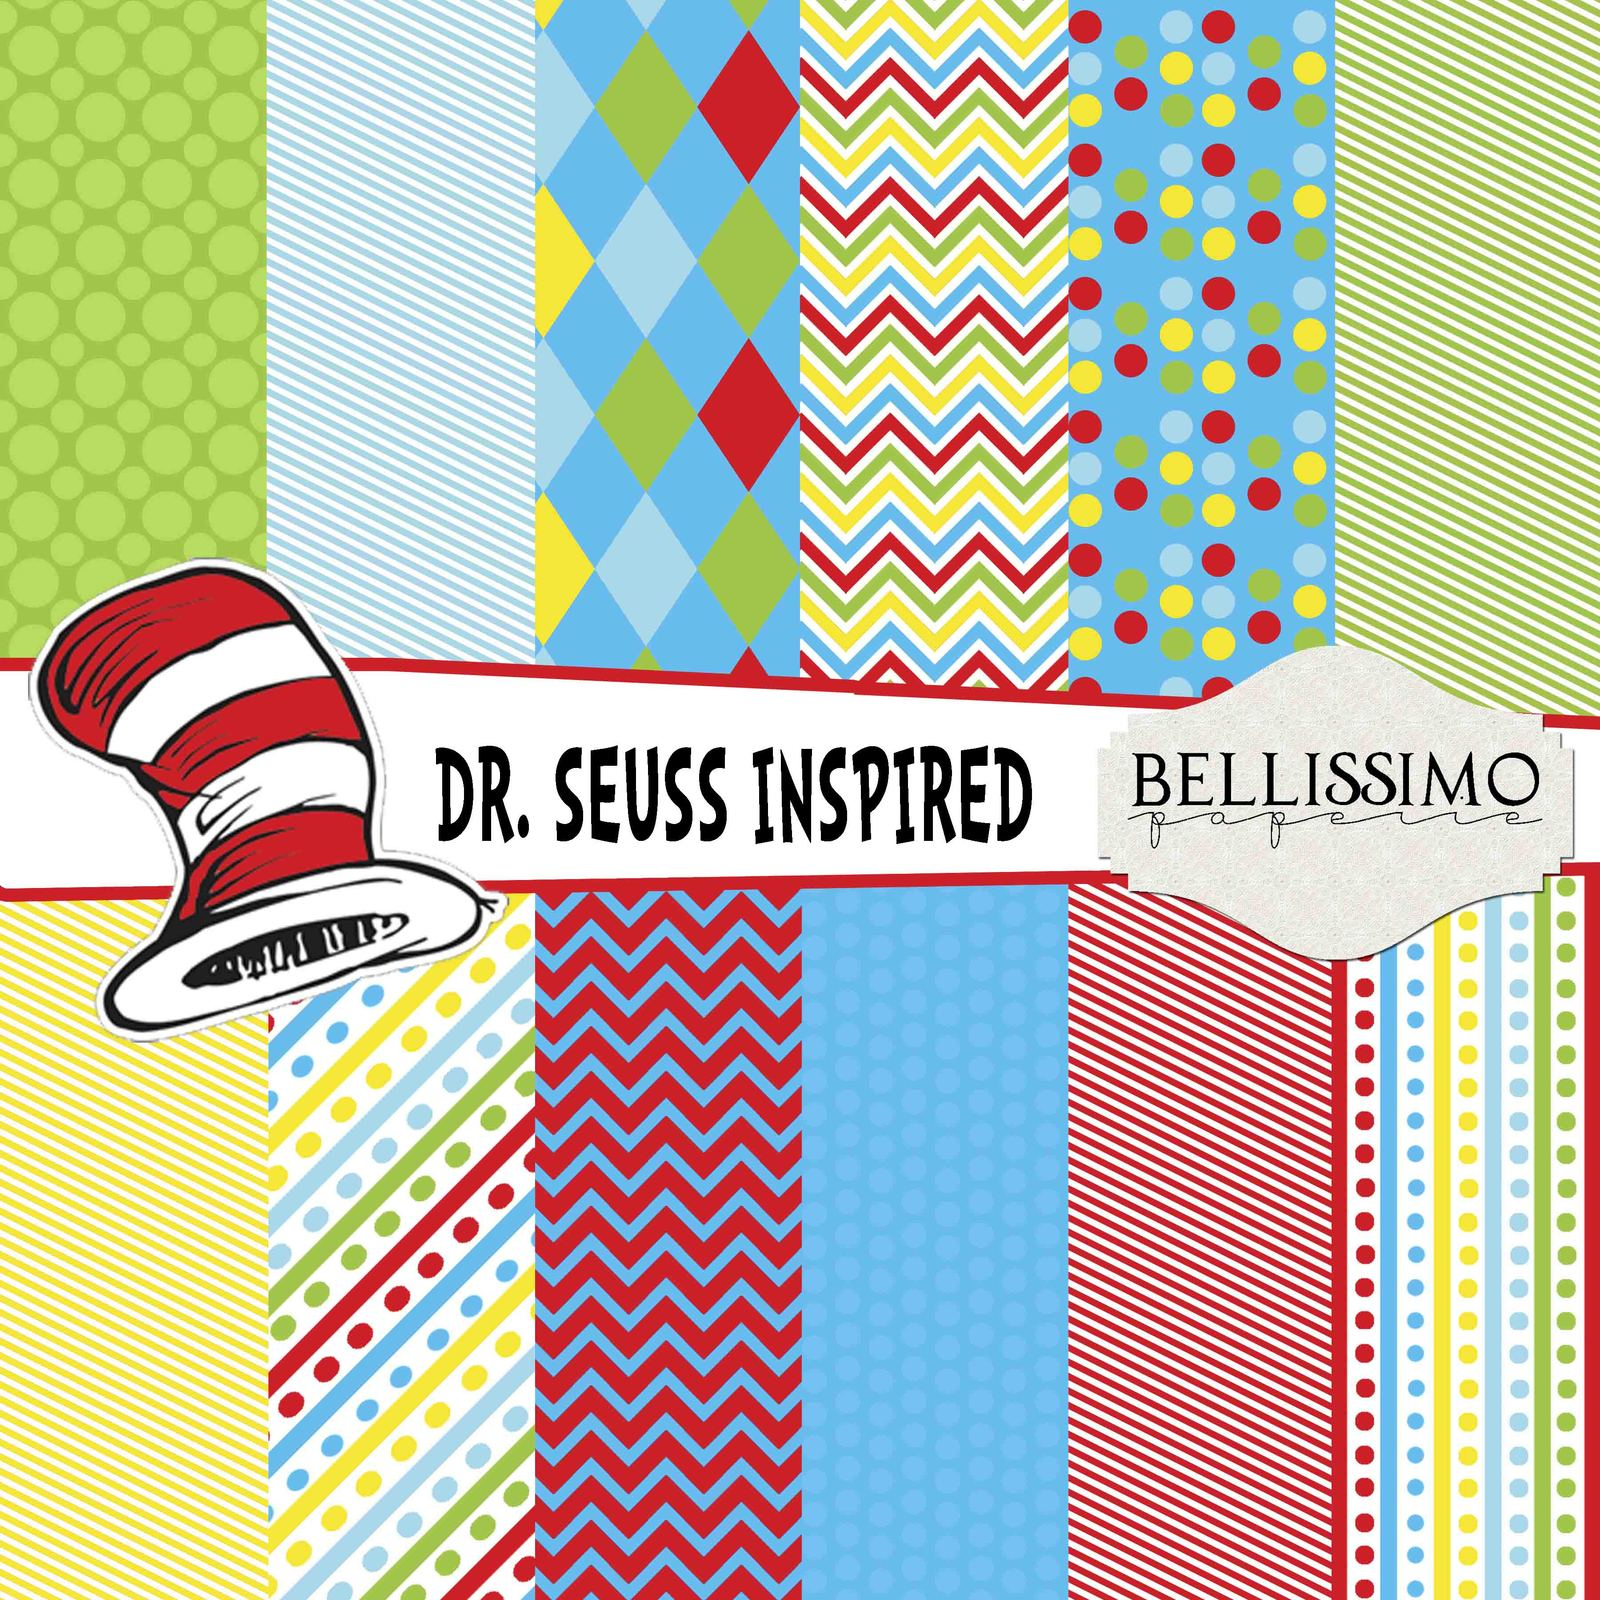 Dr. Seuss Inspired Paper Pack: Scrapbook Paper, PRINTED, 12 Sheets